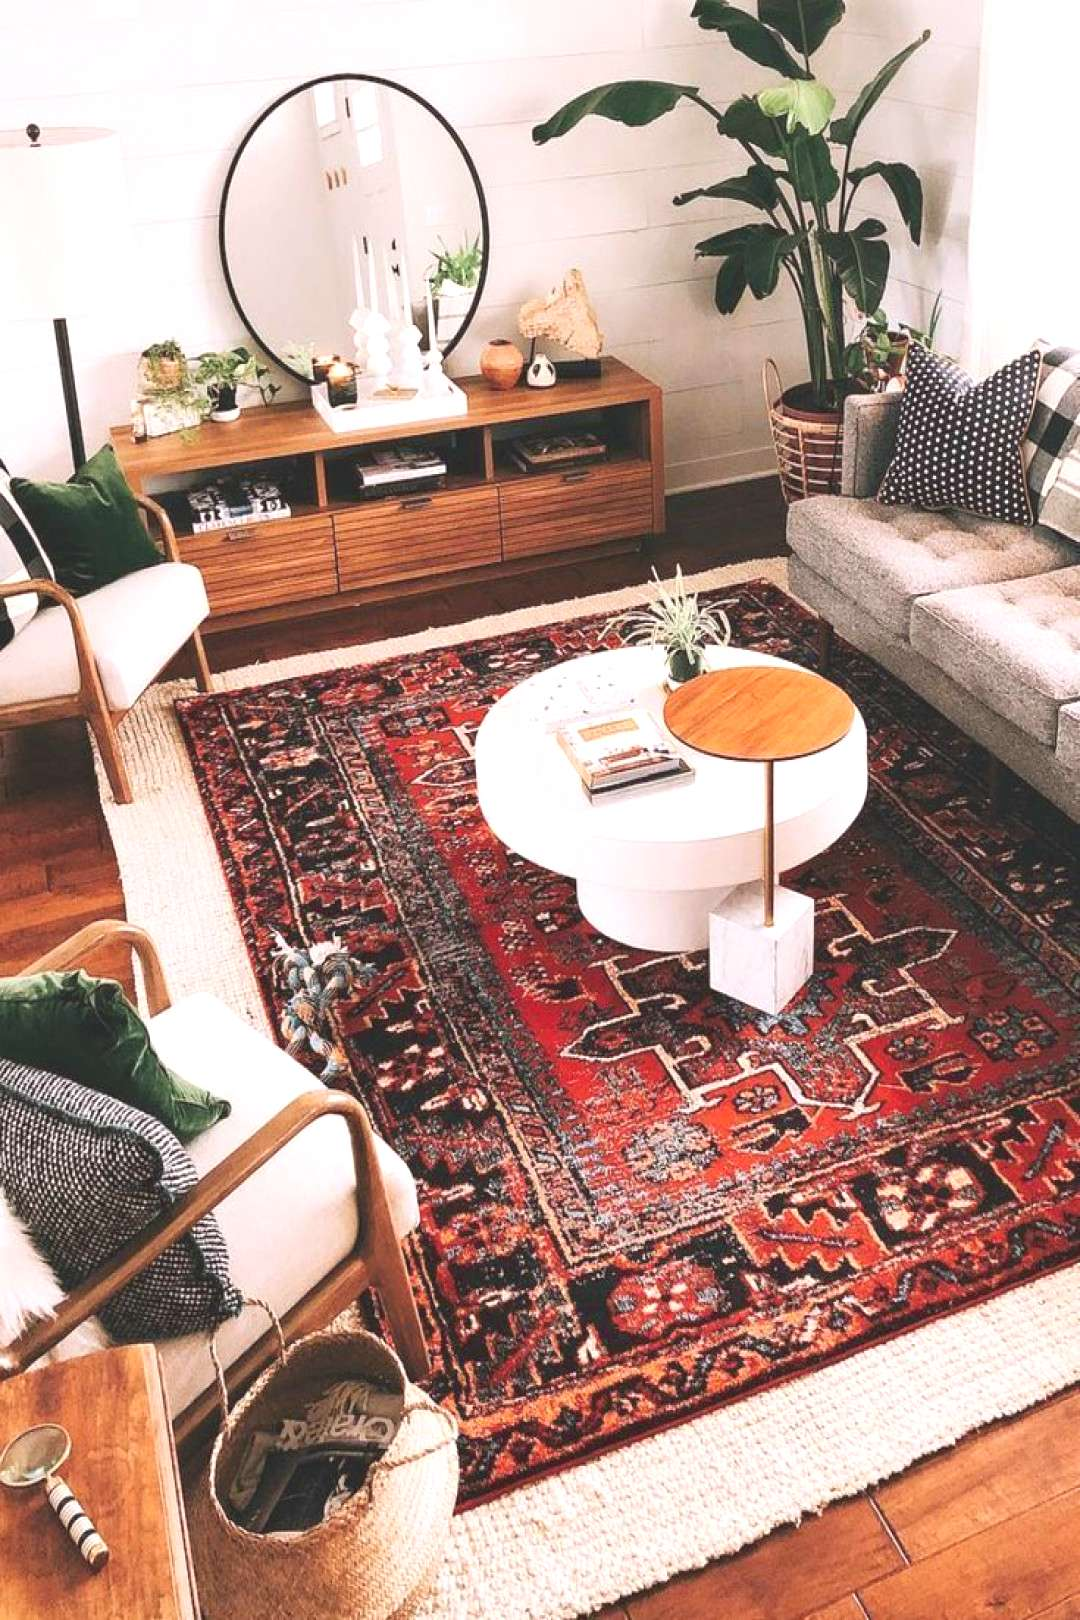 16 Bohemian Interior Design Ideas    16 Bohemian Interior Design Ideas decoration ideas